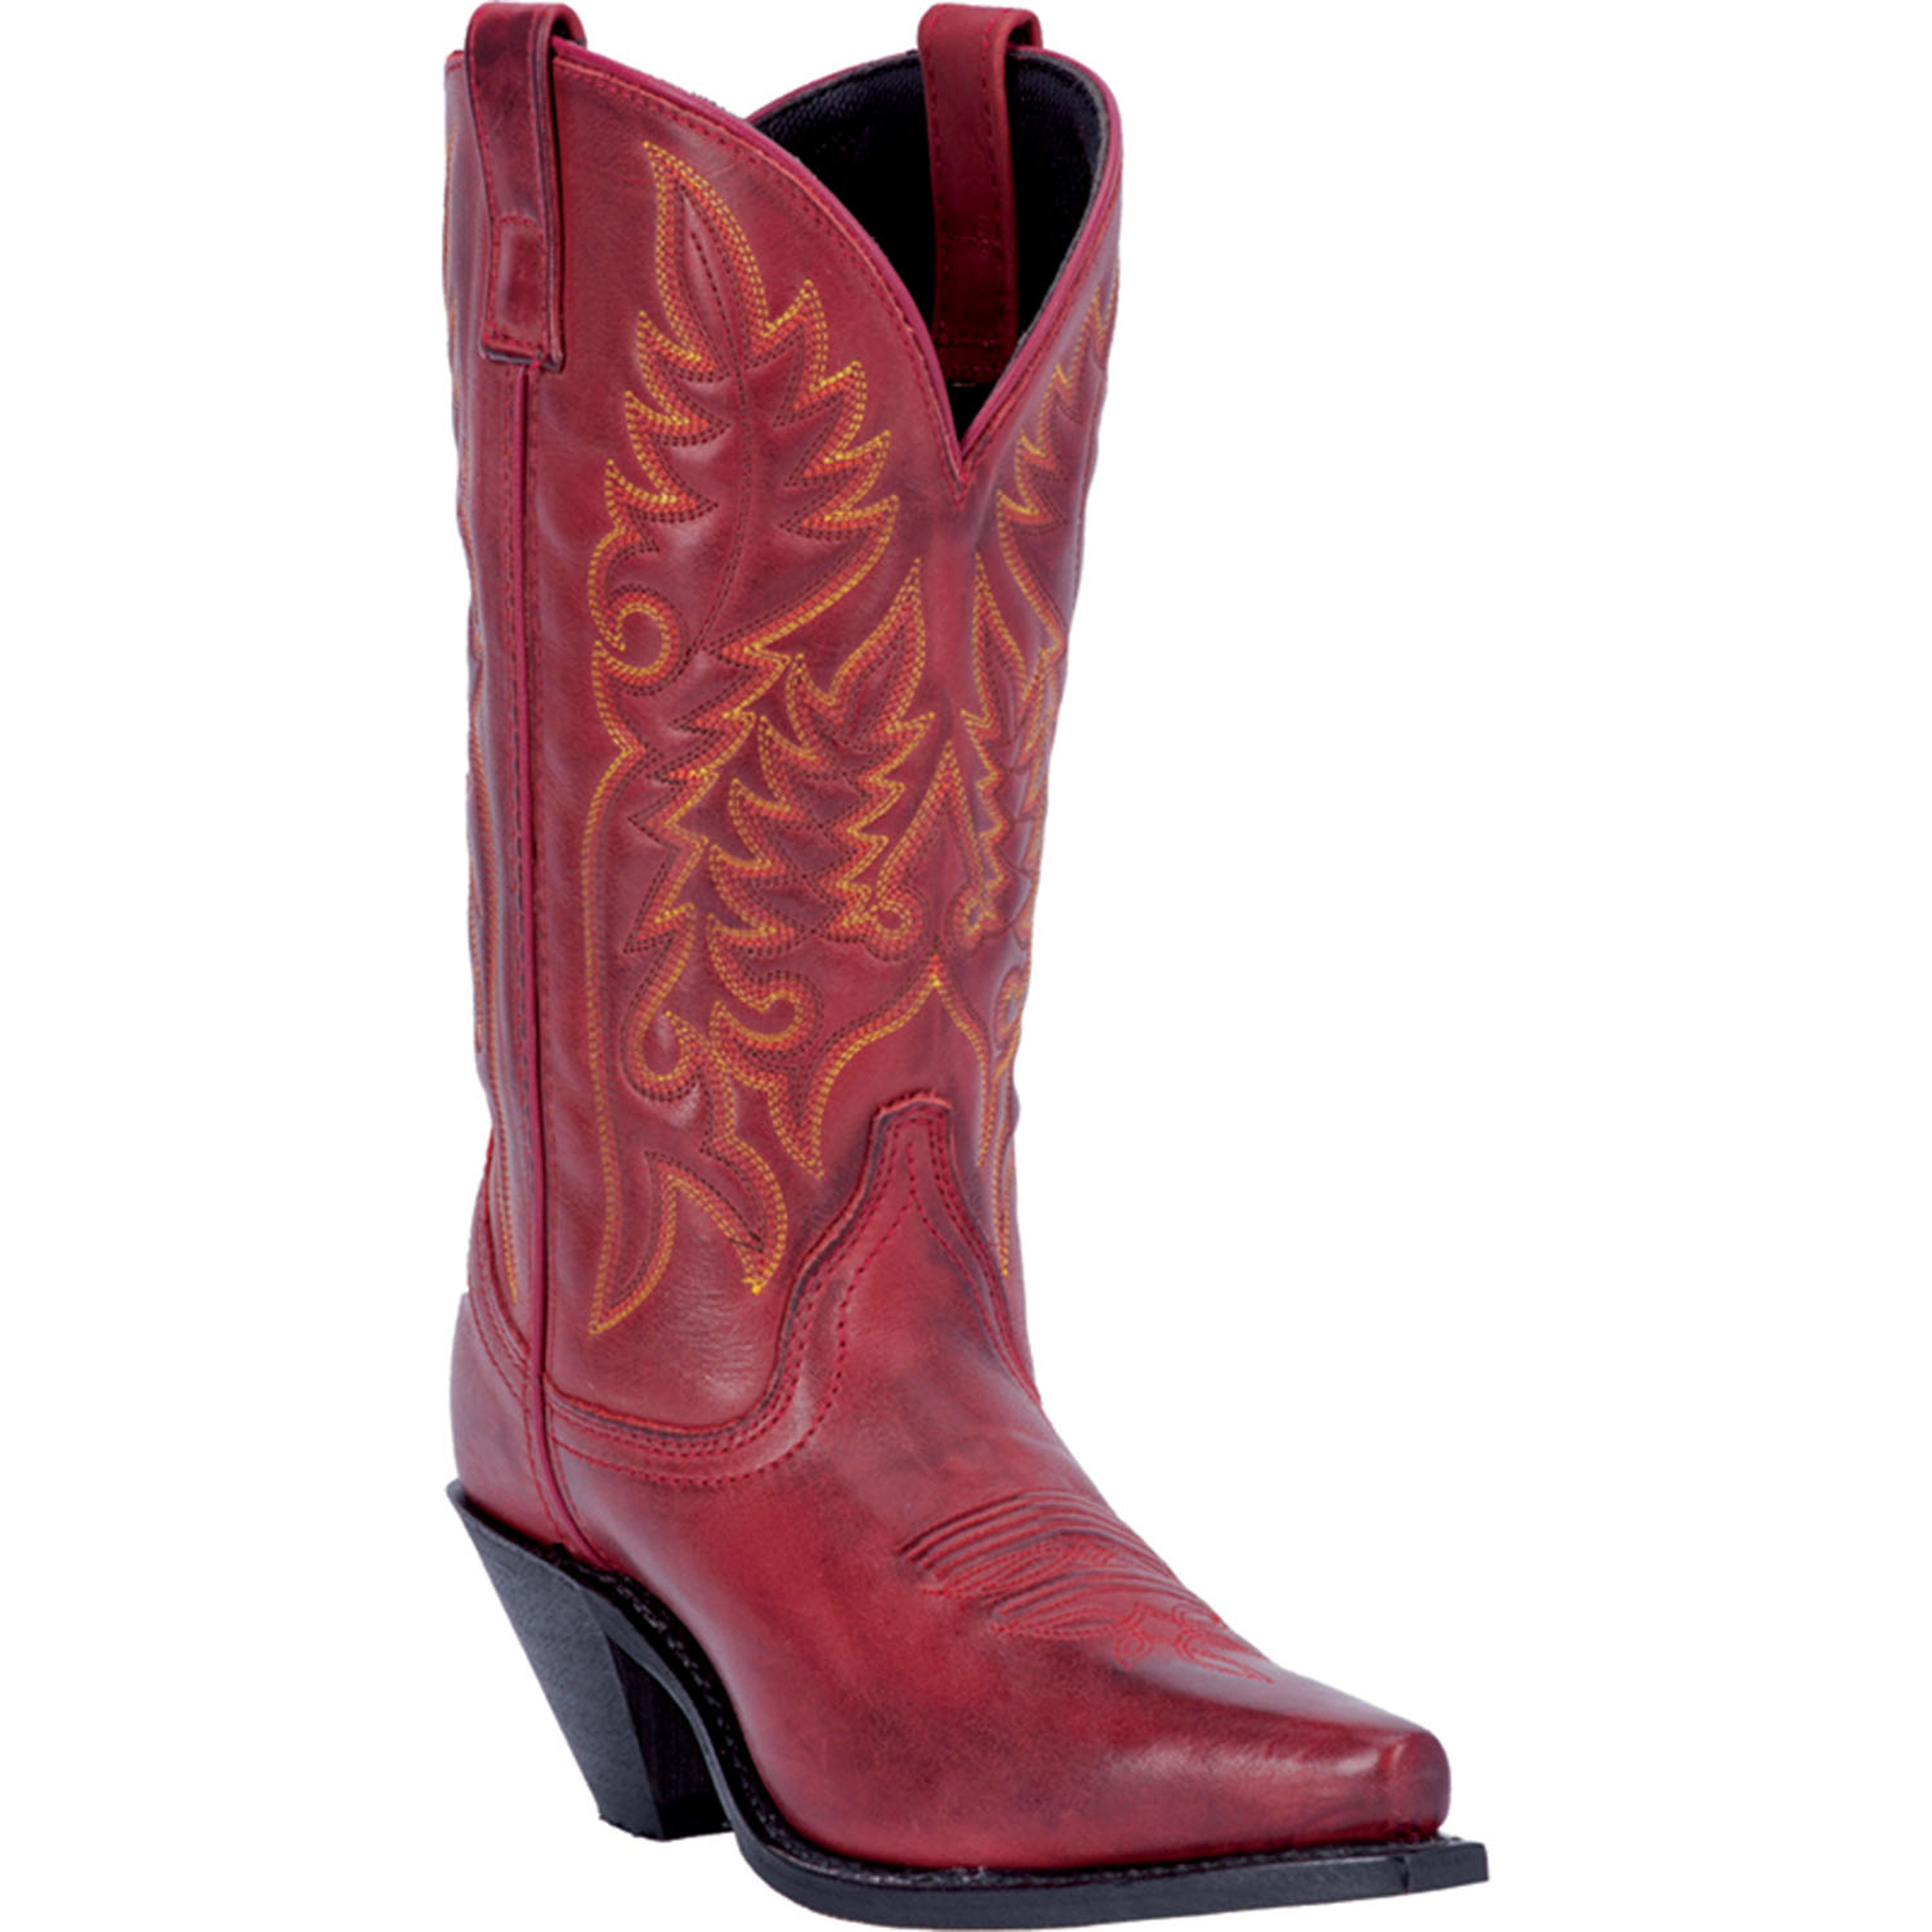 Original Valentineu0026#39;s Vintage SOLD - Womens Red Cowboy Boots - Size 8 M - $80